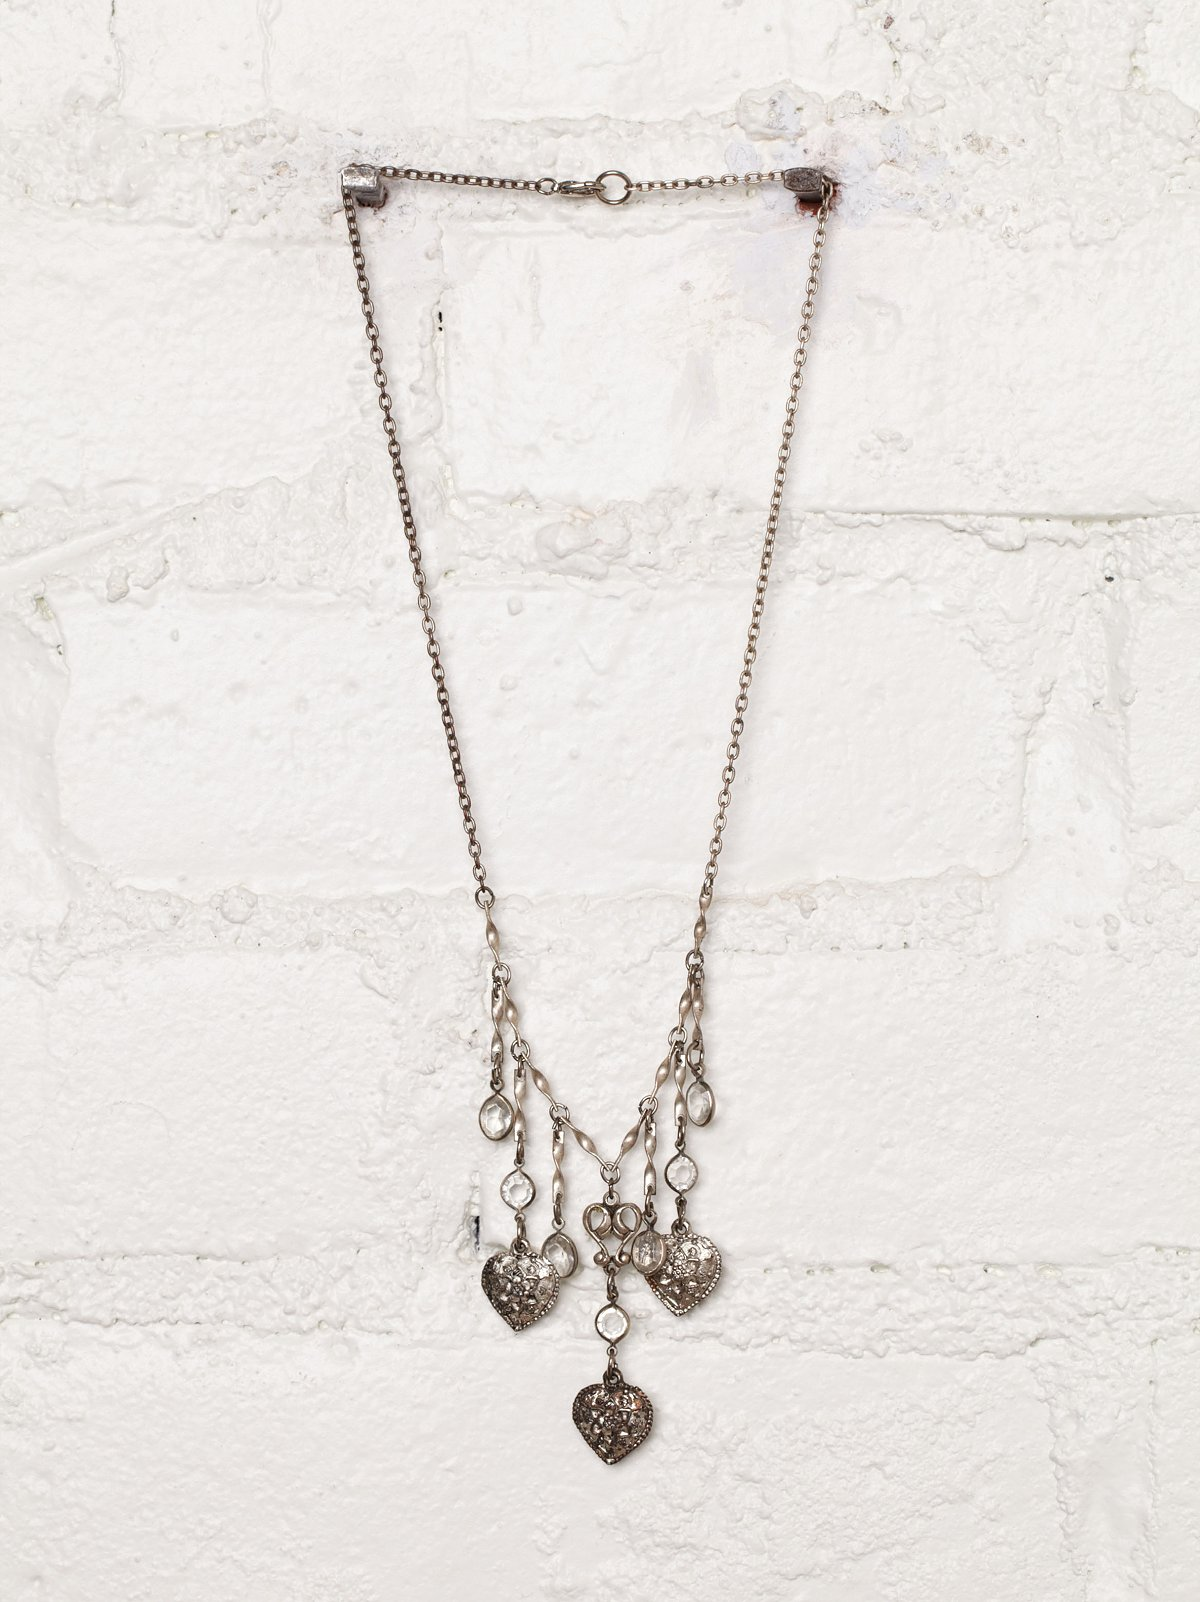 Vintage Dangling Heart Necklace